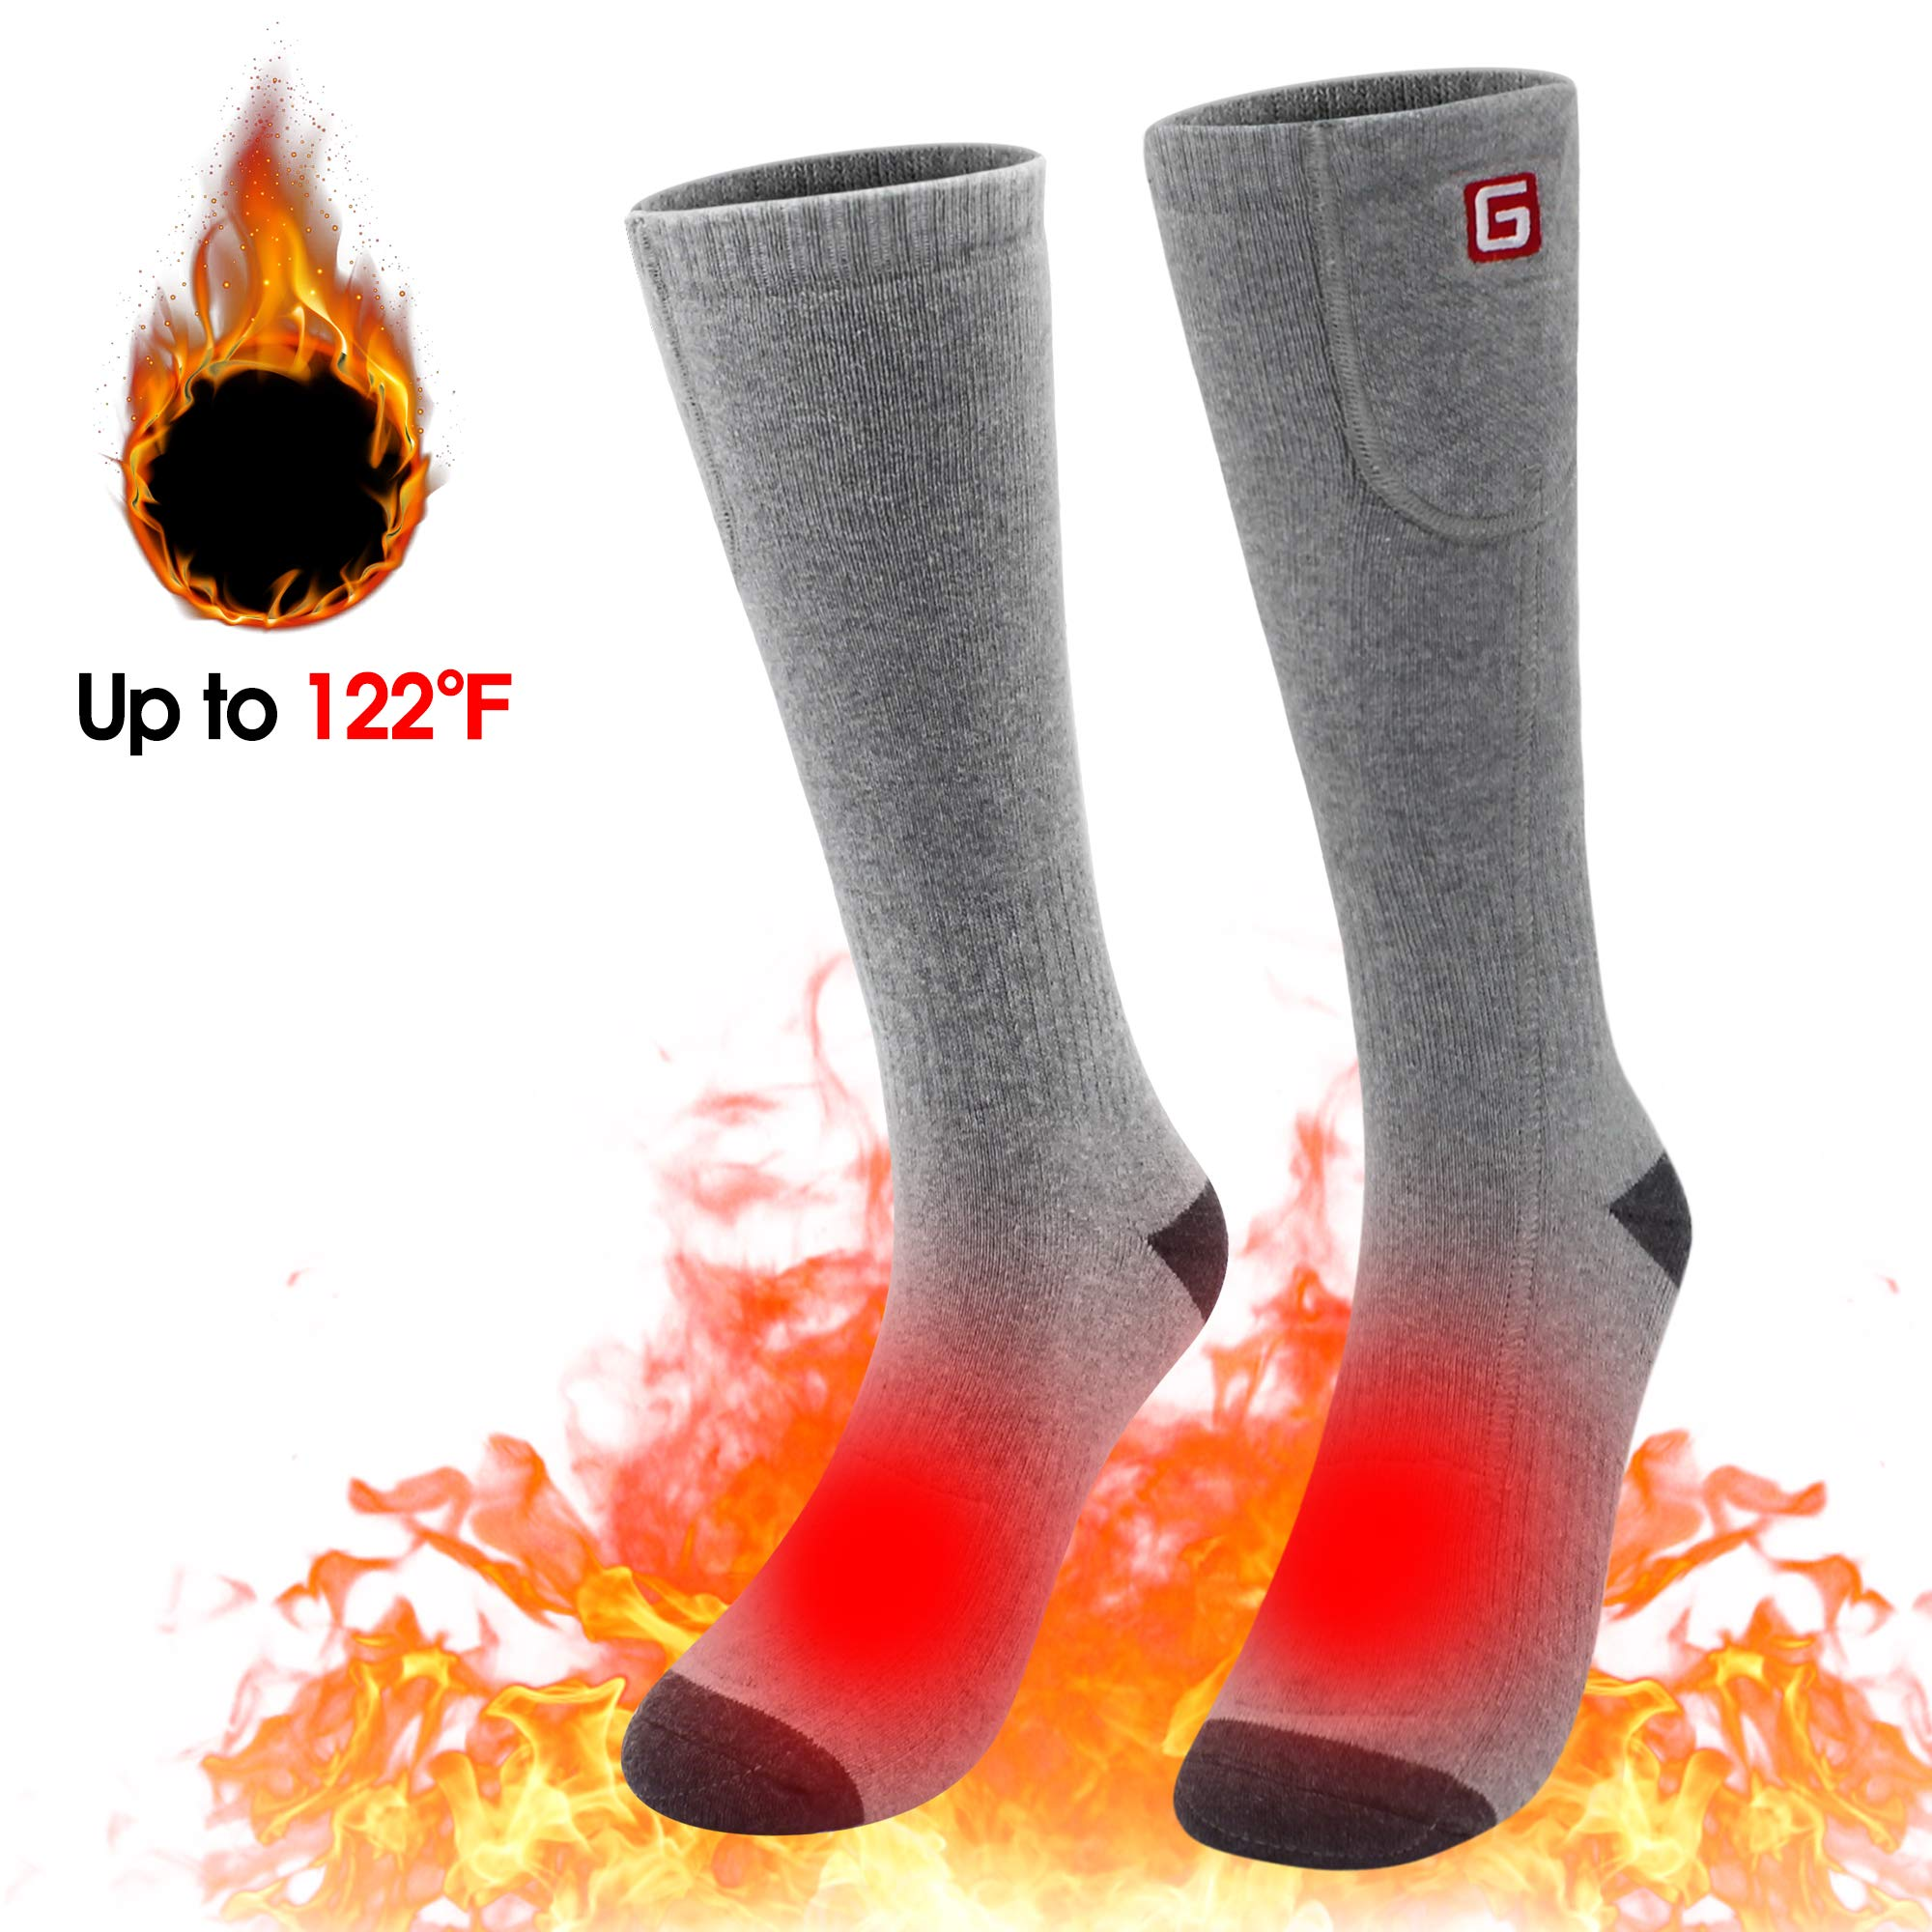 Spring Electric Rechargeable Battery Heated Socks for Men Women,Warm Feet Warmers Winter Ski Thermal Sox for Hunting Camping Hiking Climbing Riding Motorcycle (Gray) by SPRING SHOP